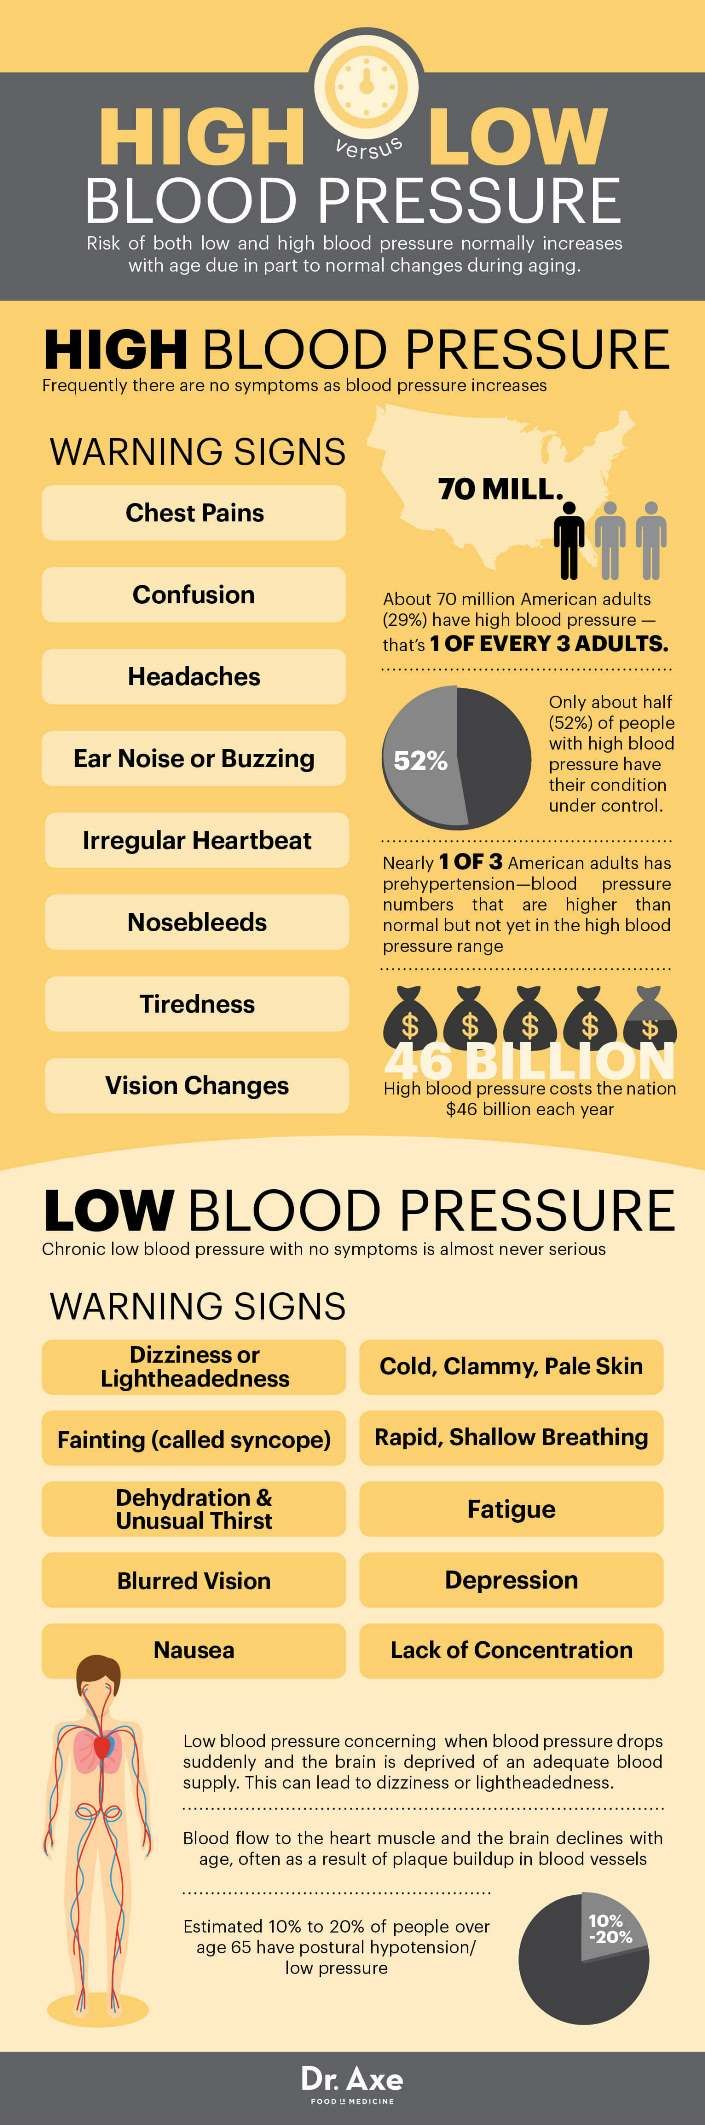 High vs Low Blood Pressure :  Risk of both low blood pressure and high…